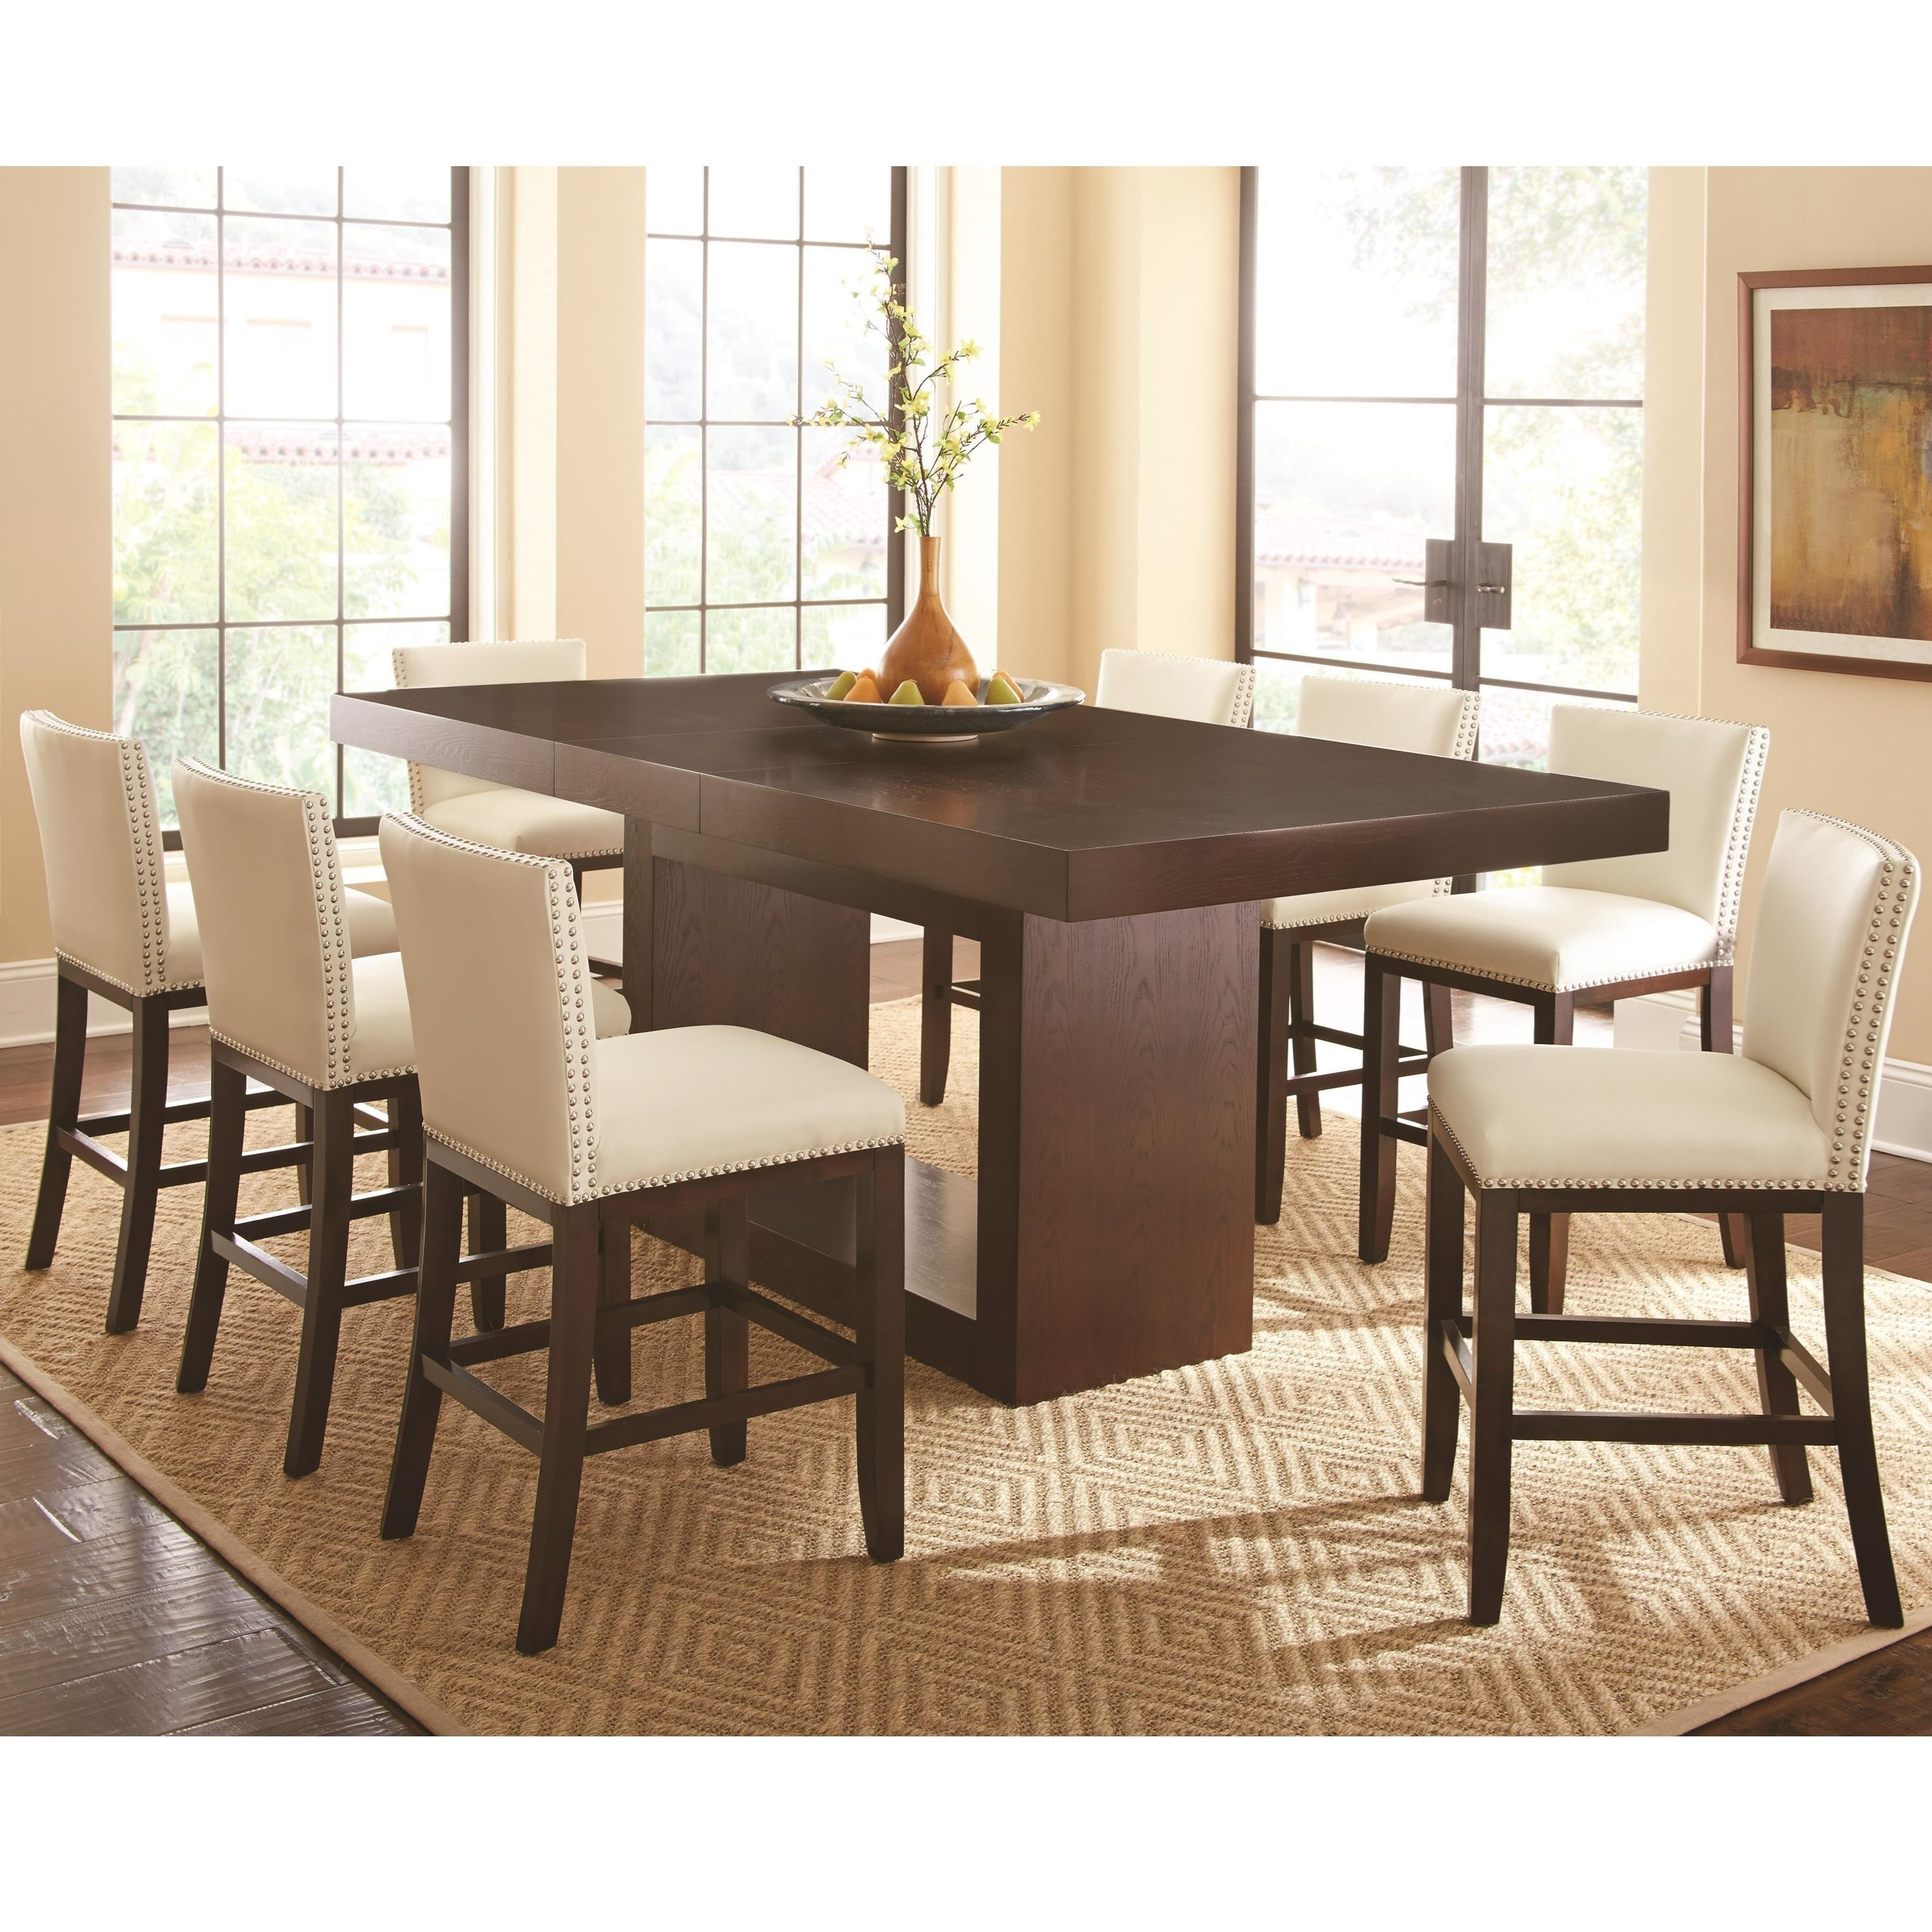 Antonio 9 Piece Counter Height Dining Set With Tiffany Upholstered Chairs  By Vendor 3985